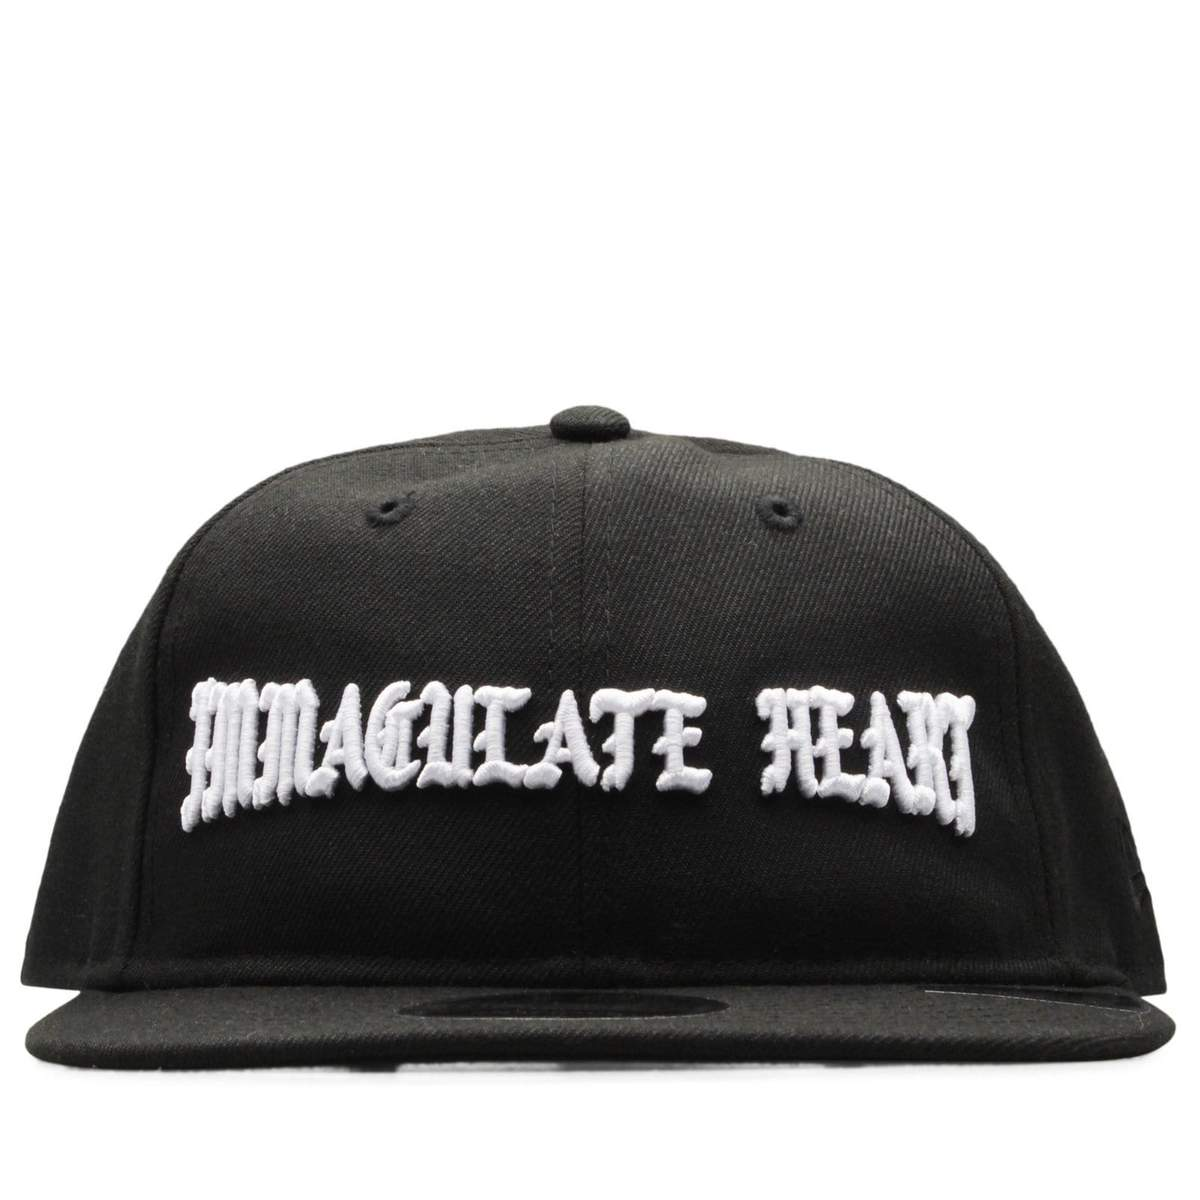 Born x Raised Immaculate Heart Strapback